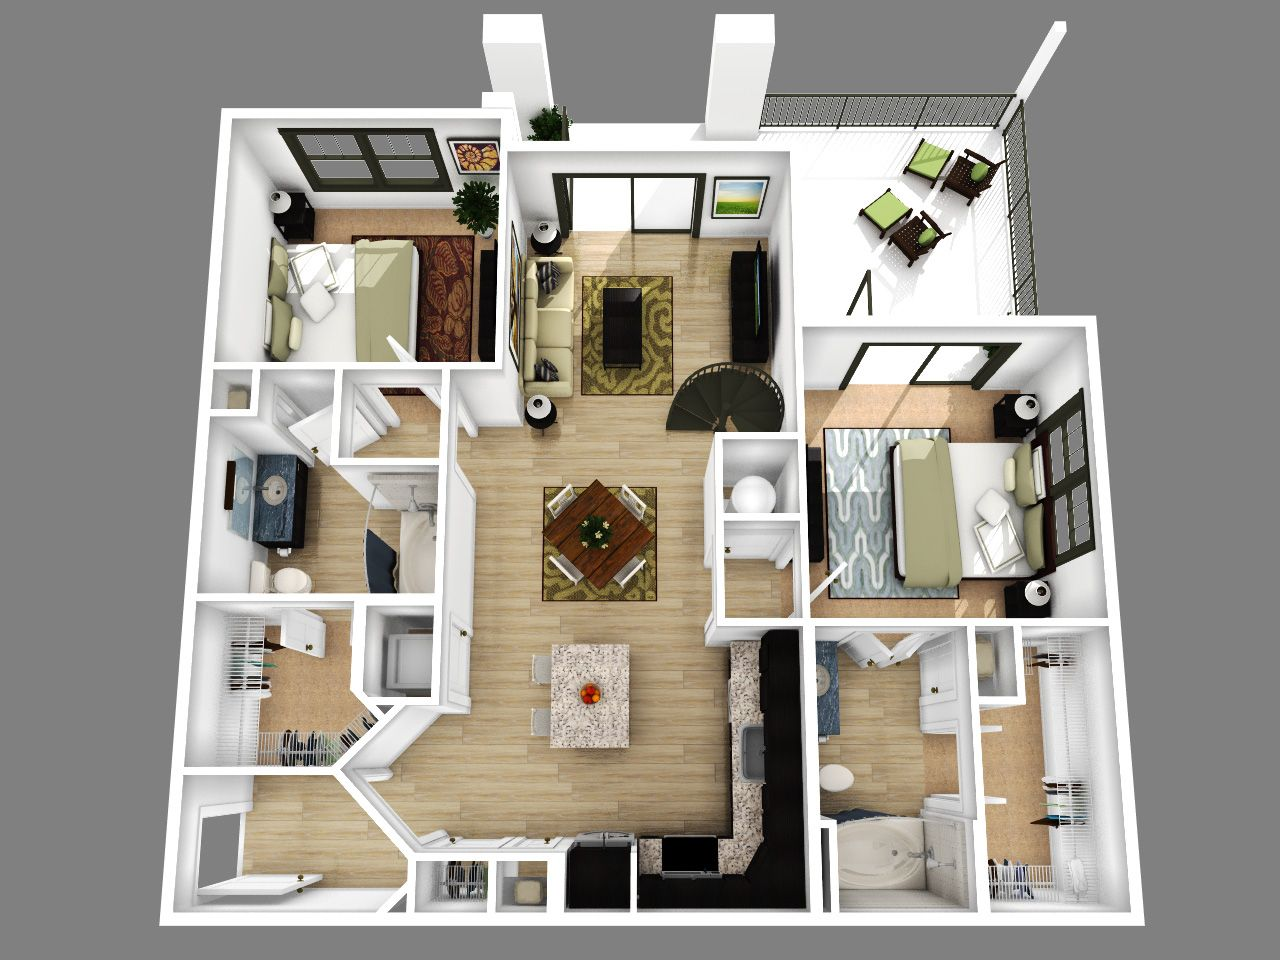 2 Bedroom Apartment Floor Plans 3D Amazing Decoration 416118 Decorating  Ideas